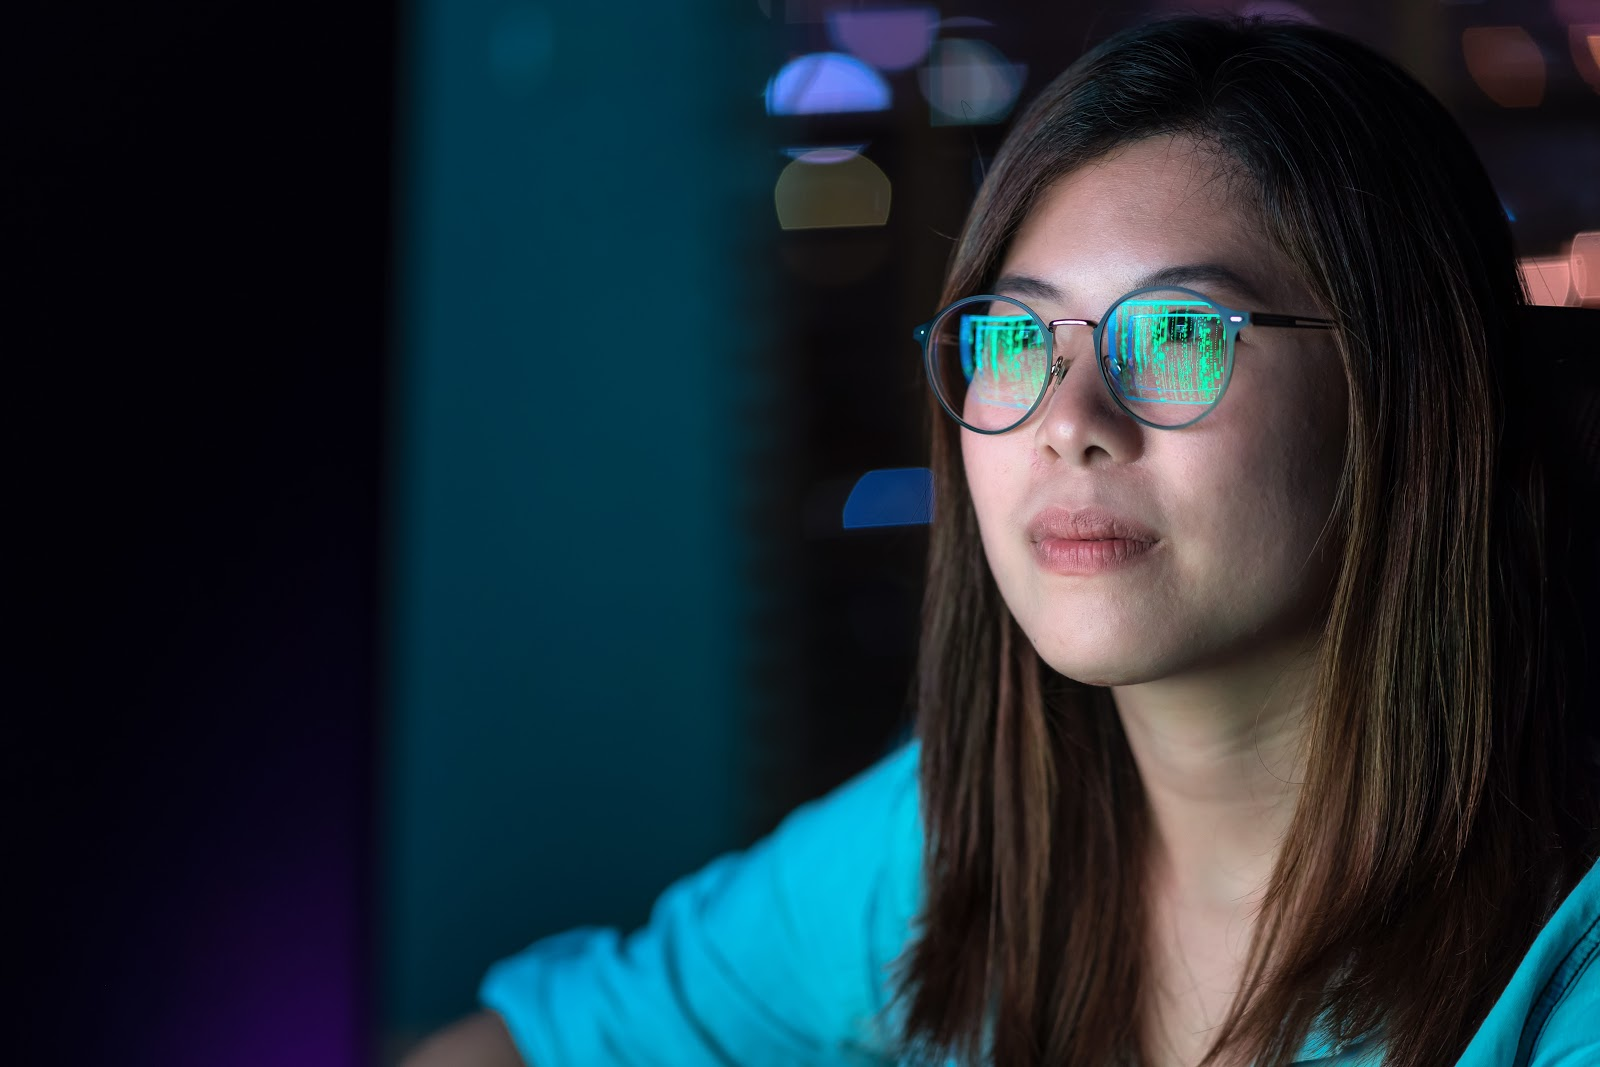 Young woman in a dark room staring at computer screen reflecting in her glasses